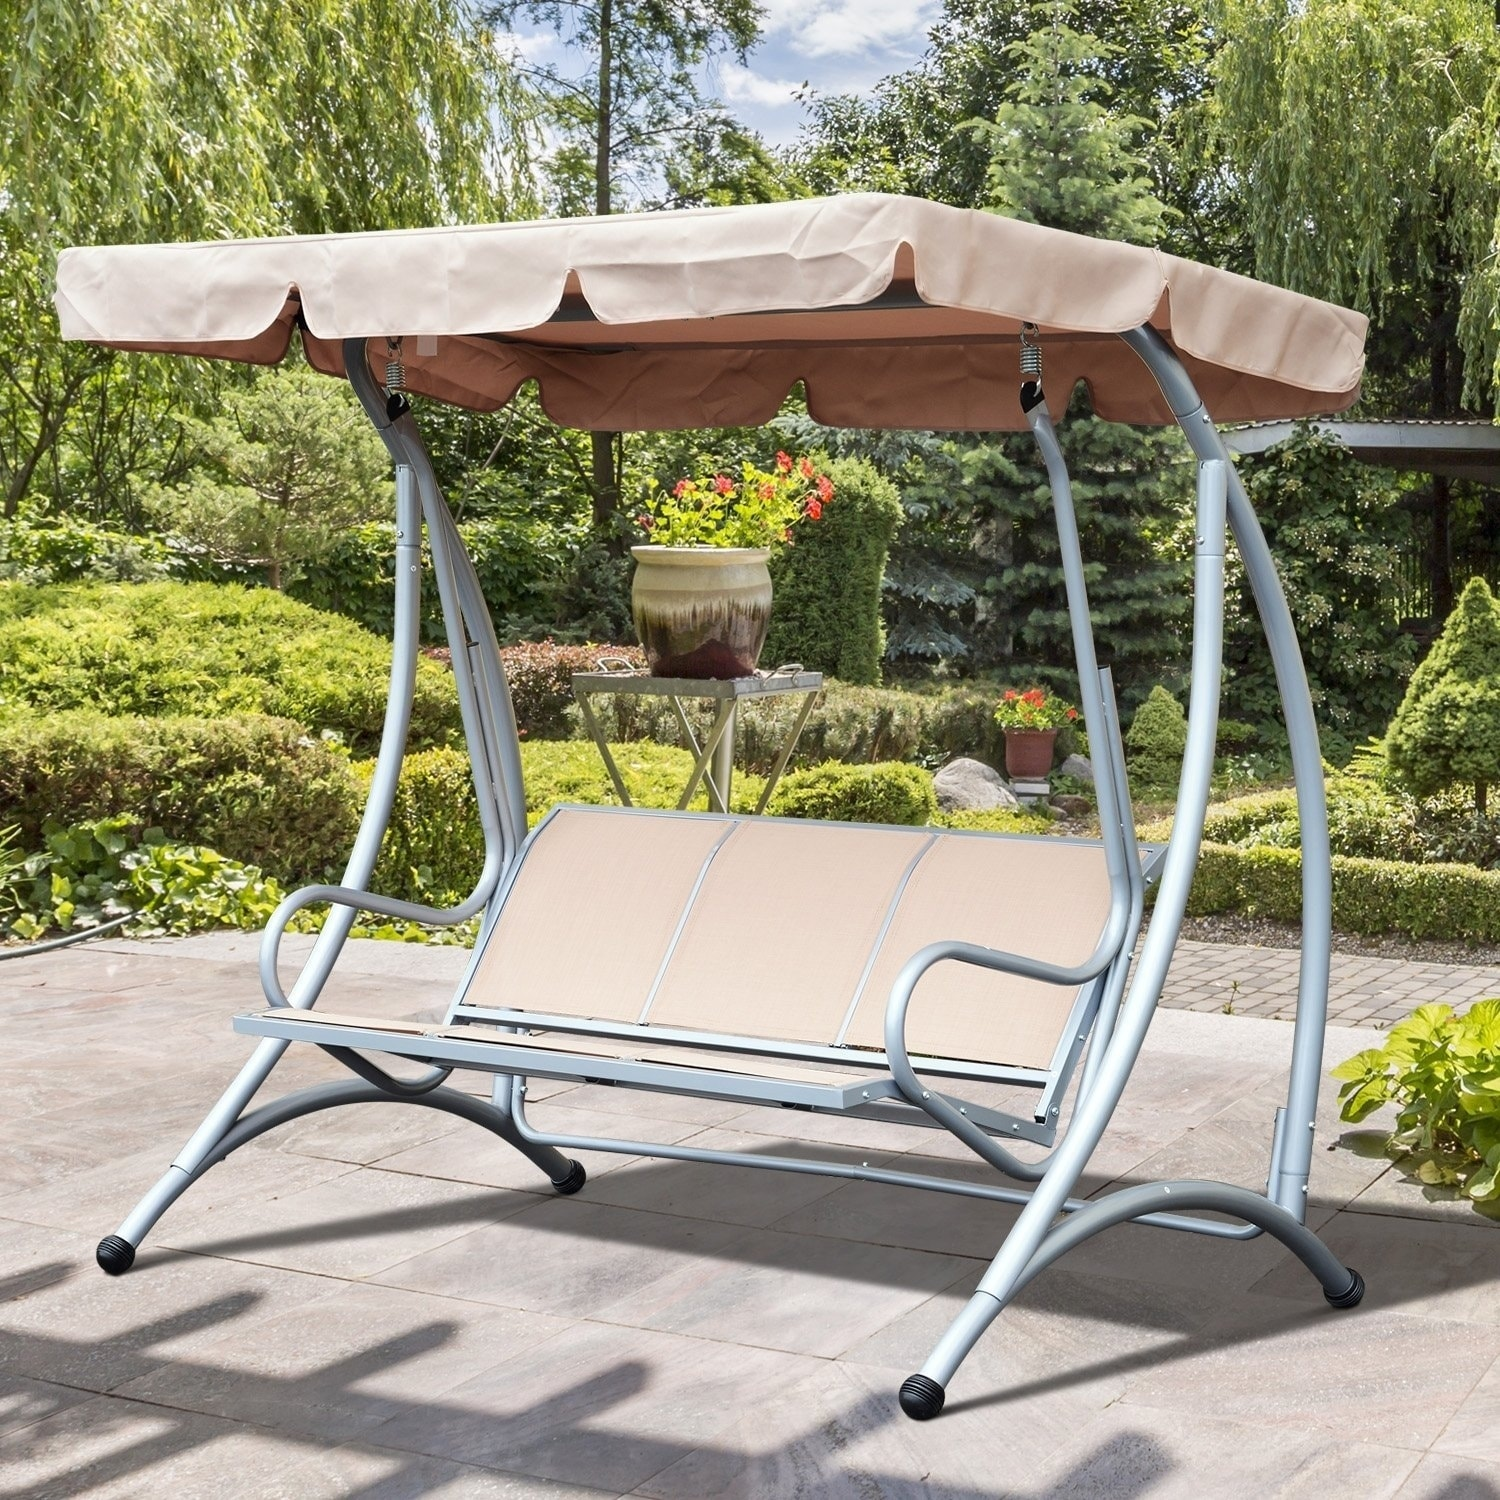 Outsunny 3 Person Steel Outdoor Patio Swing Chair With Canopy Beige Free Shipping Today 21869583